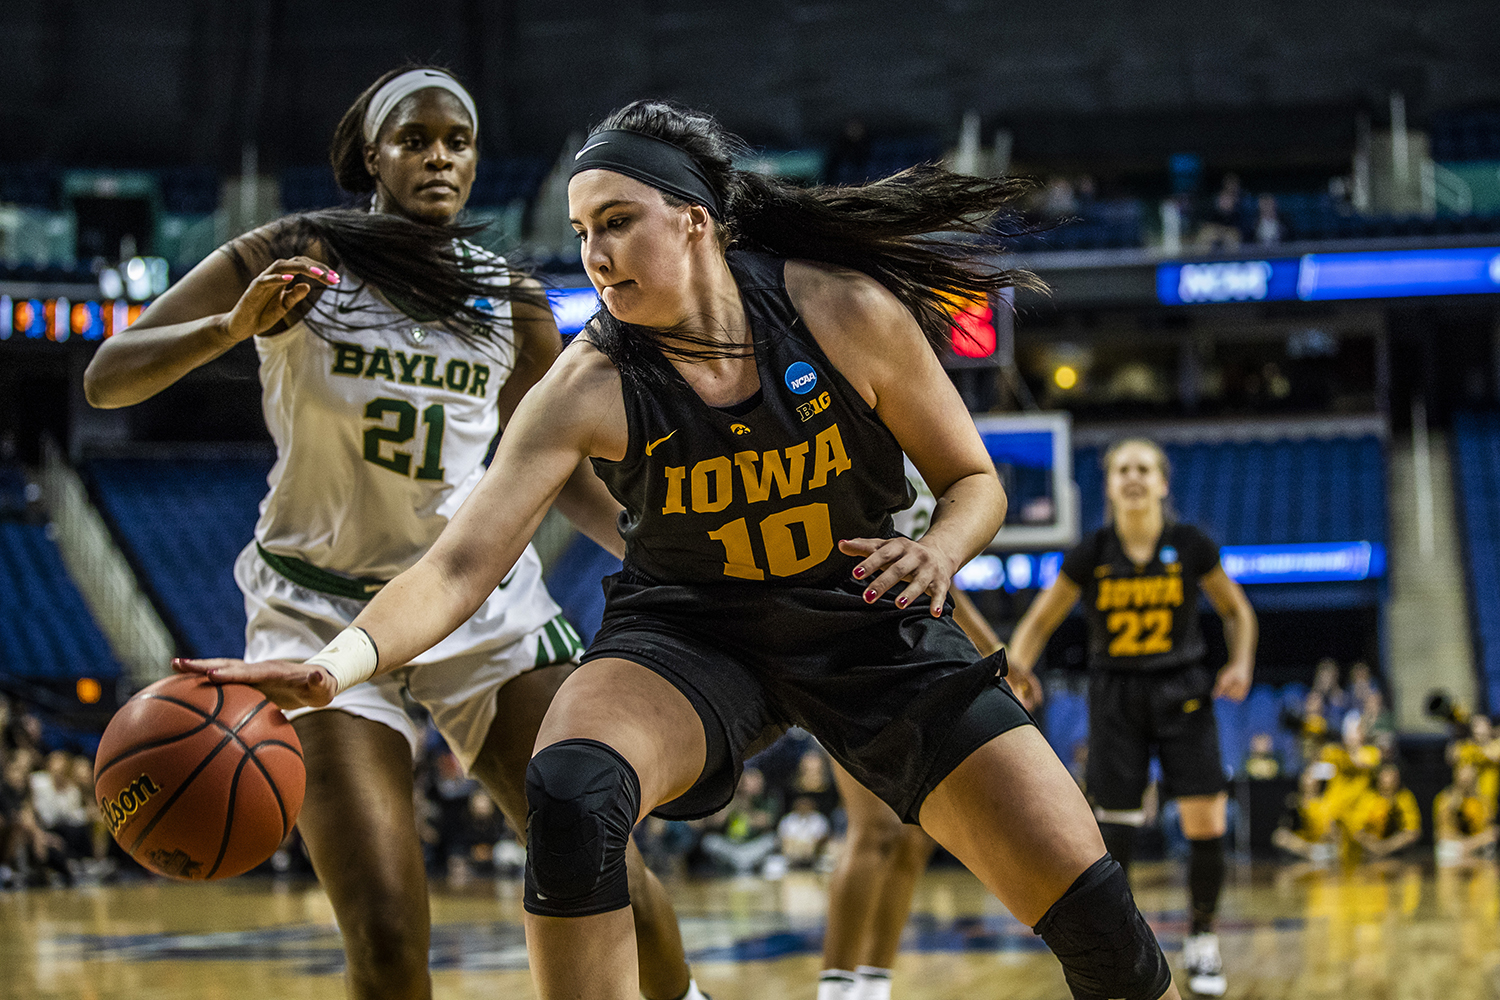 Iowa center Megan Gustafson takes a hold of the ball as Baylor center Kalani Brown runs to guard her during the NCAA Elite 8 game against Baylor on April 1.